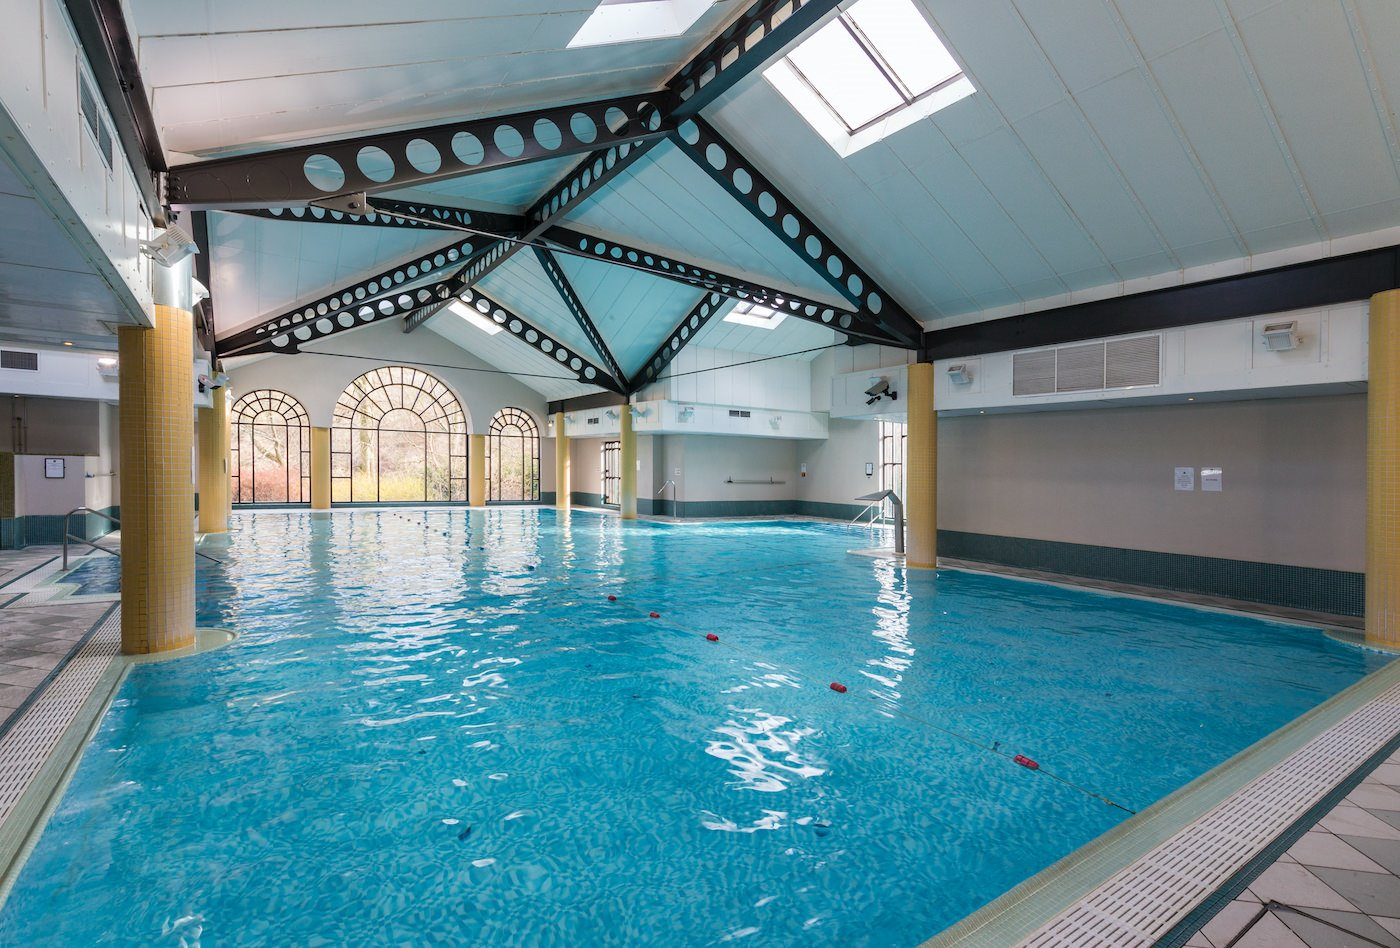 Visit peebles hydro for luxury hotel accommodation spa for Hydroponic pool